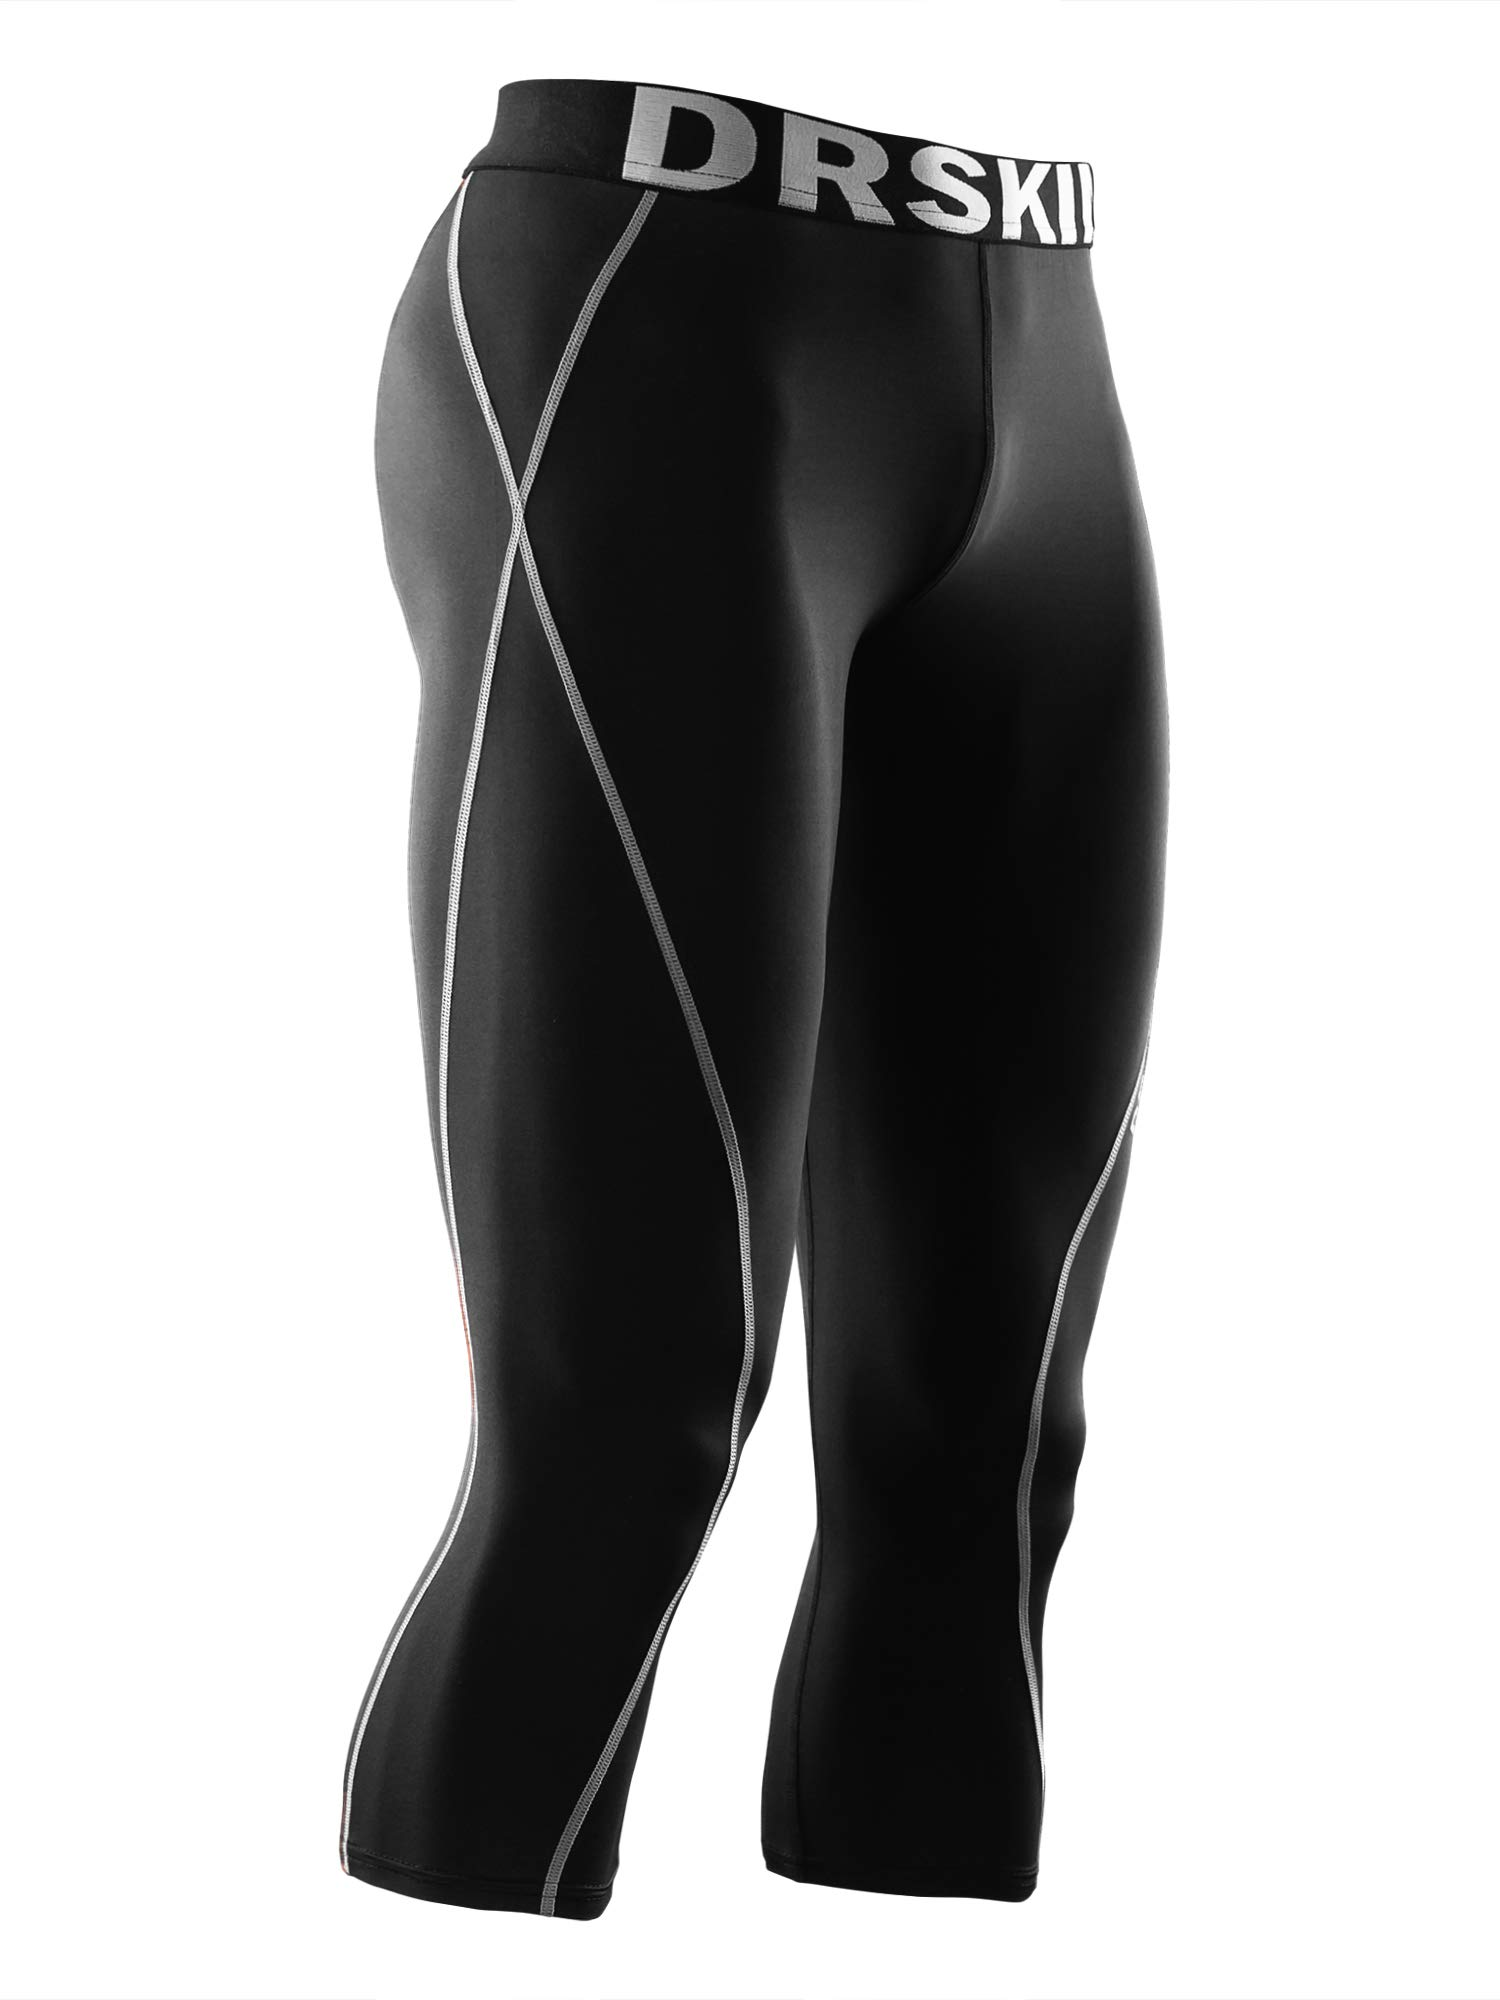 DRSKIN] Tight 3/4 Compression Pants Base Layer Running Pants Men (S, BG801)